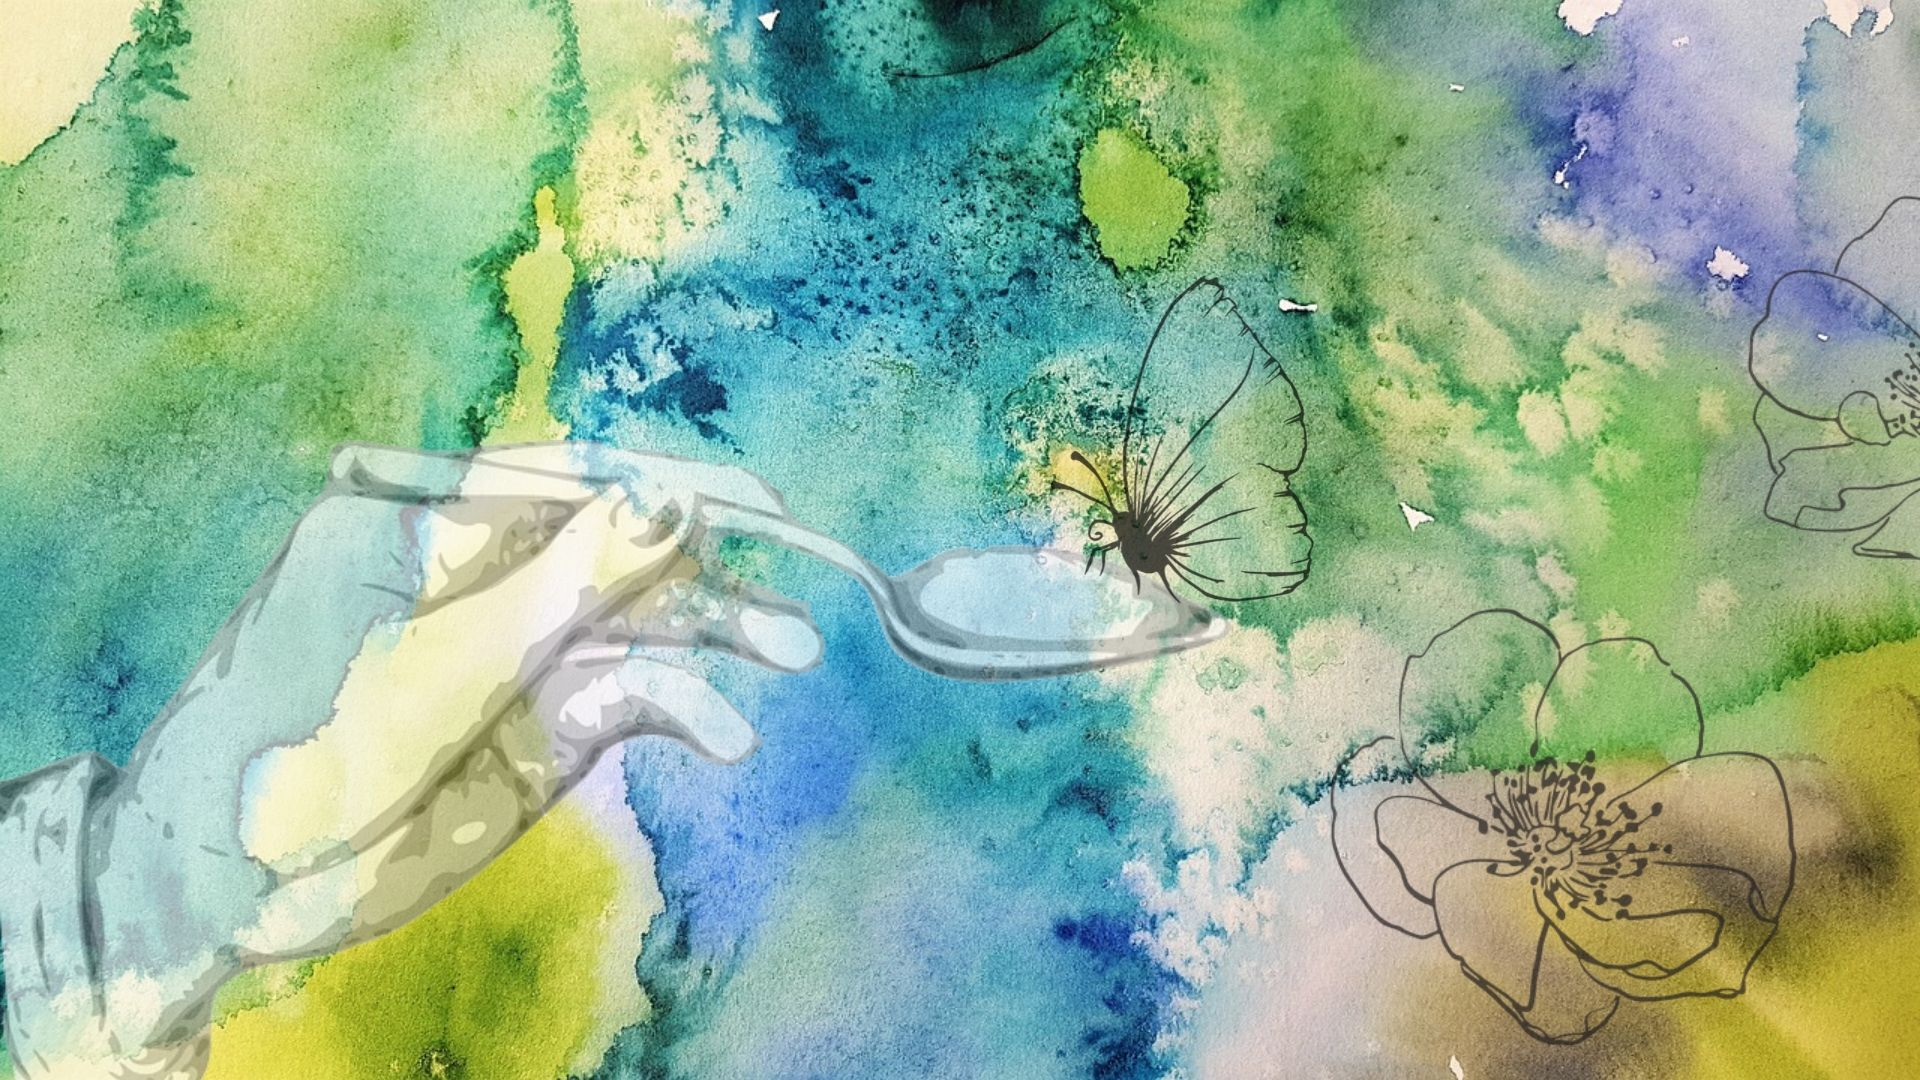 green watercolour background with butterfly, hand holding spoon and flower